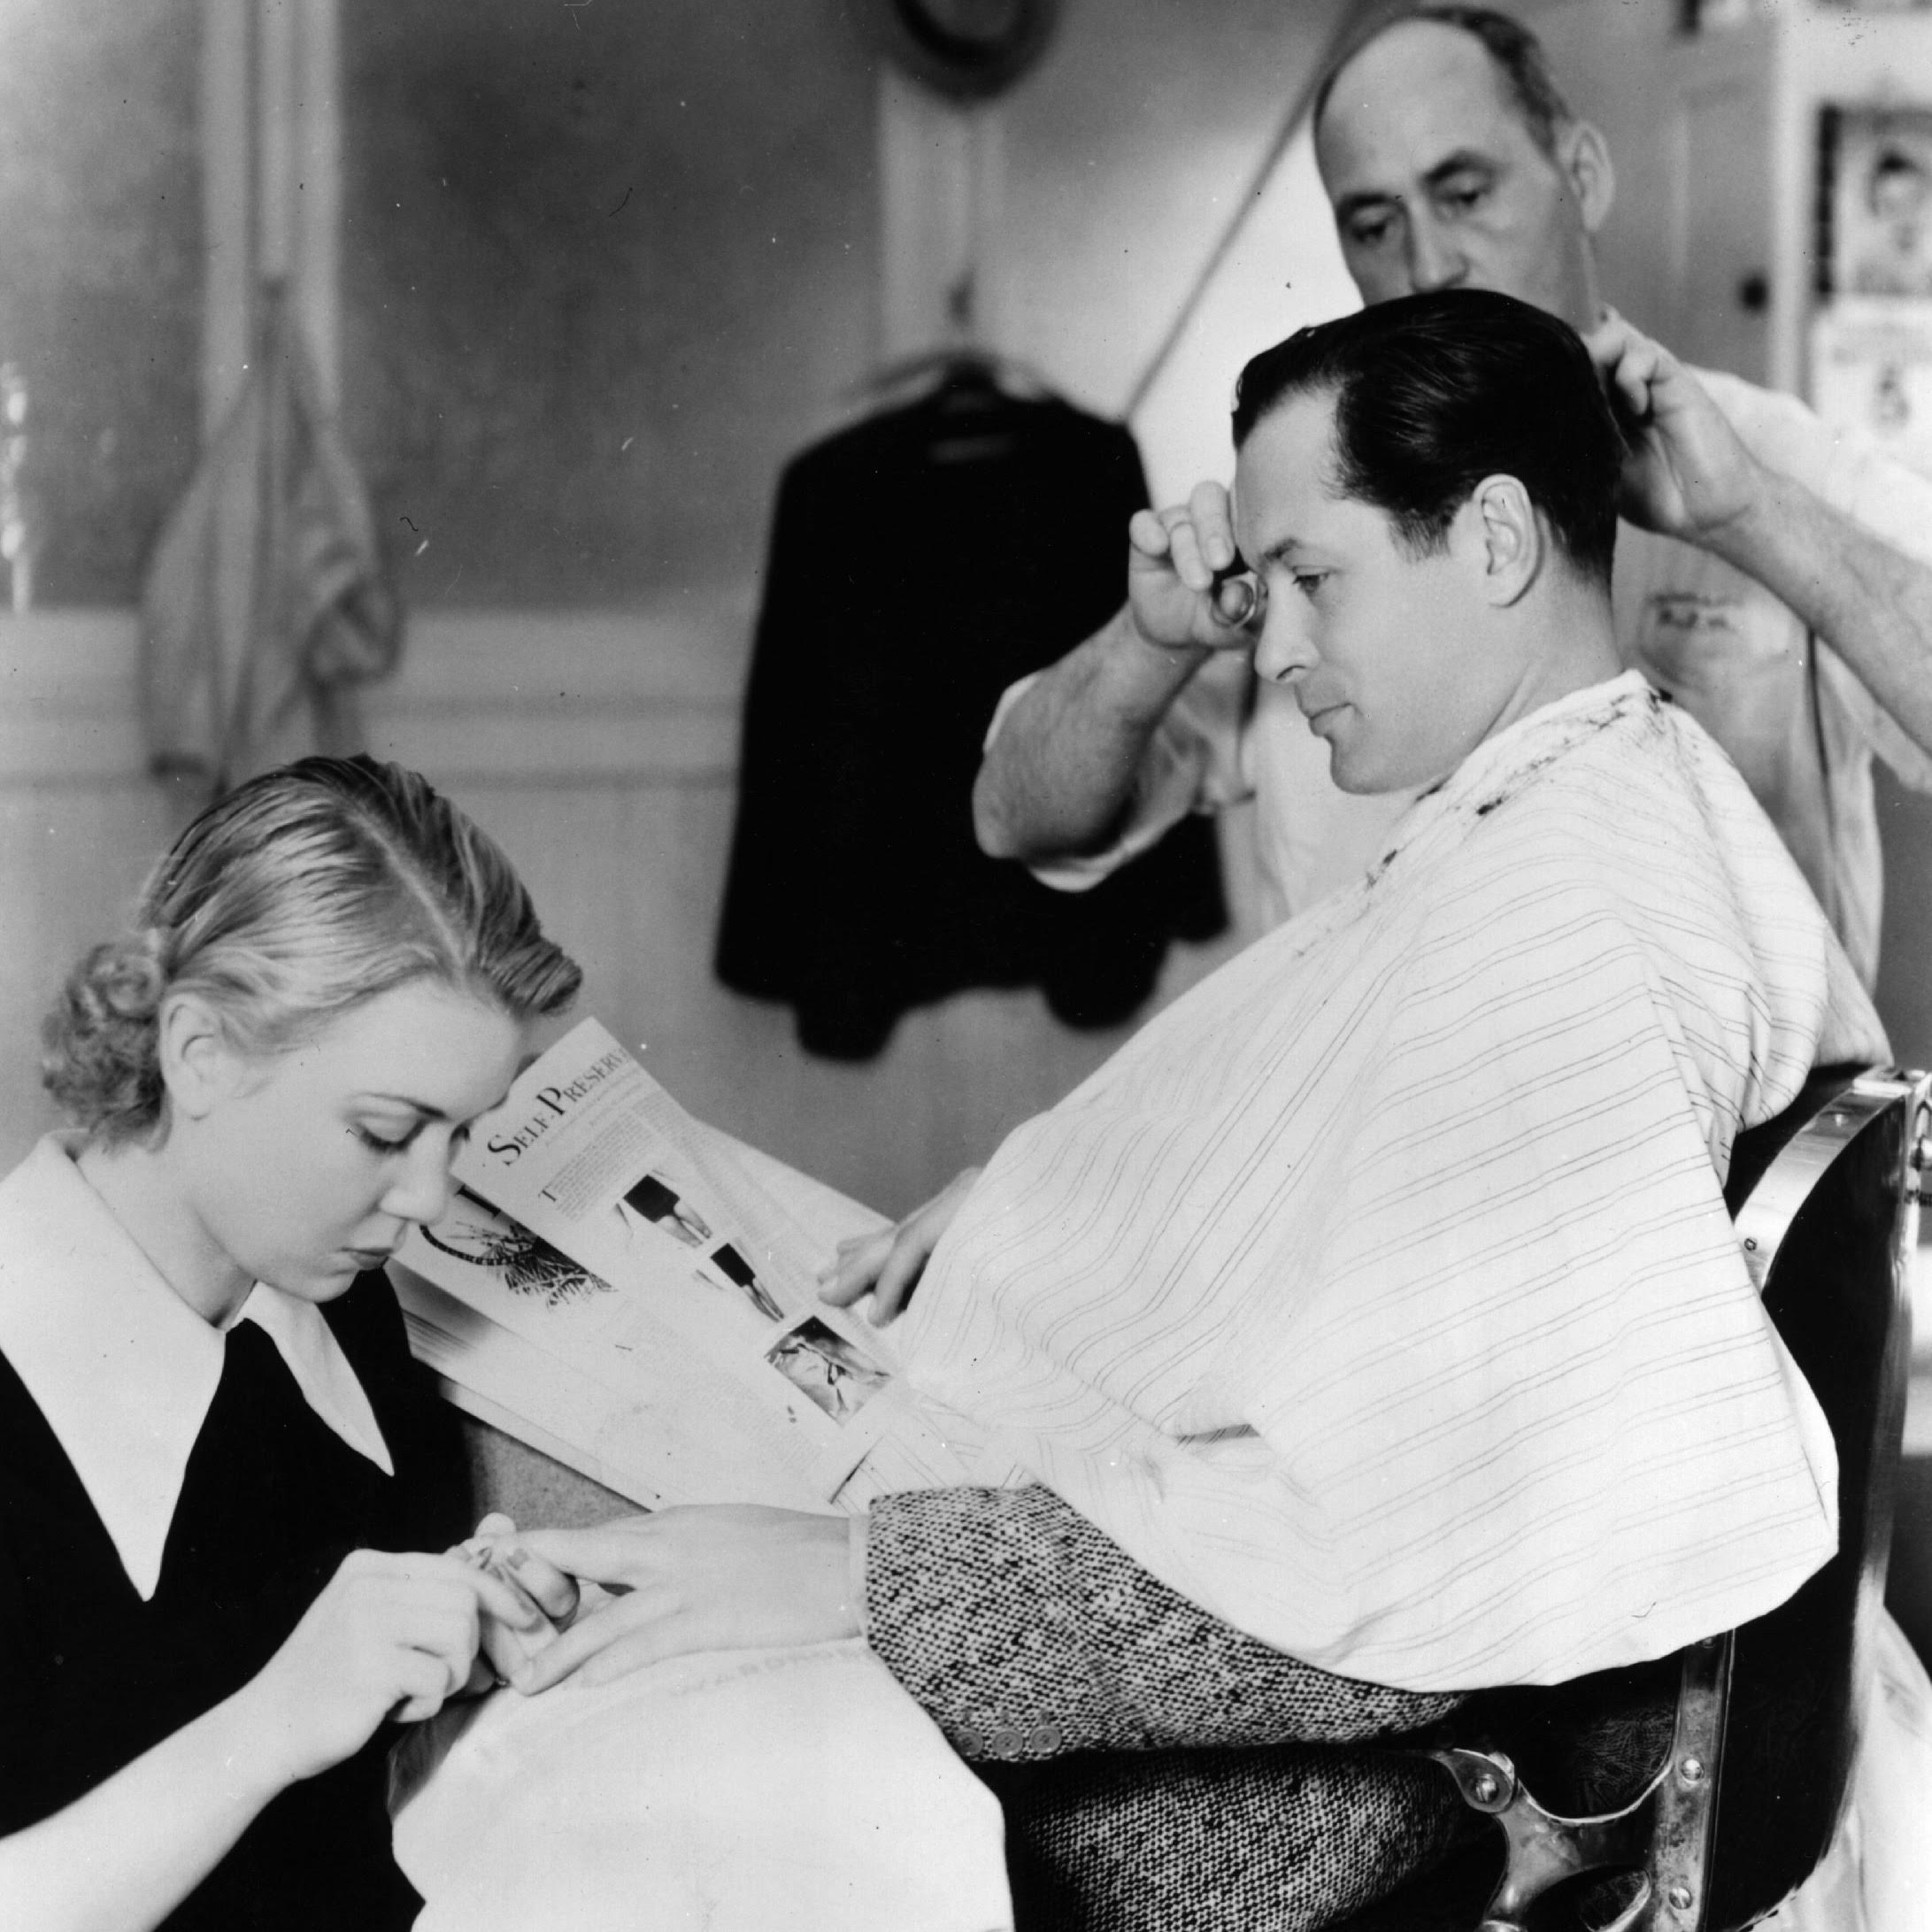 circa 1933: Robert Montgomery, the Hollywood star, signed by MGM, seen having a trim and manicure in the studio barber shop. (Photo by Hulton Archive/Getty Images)